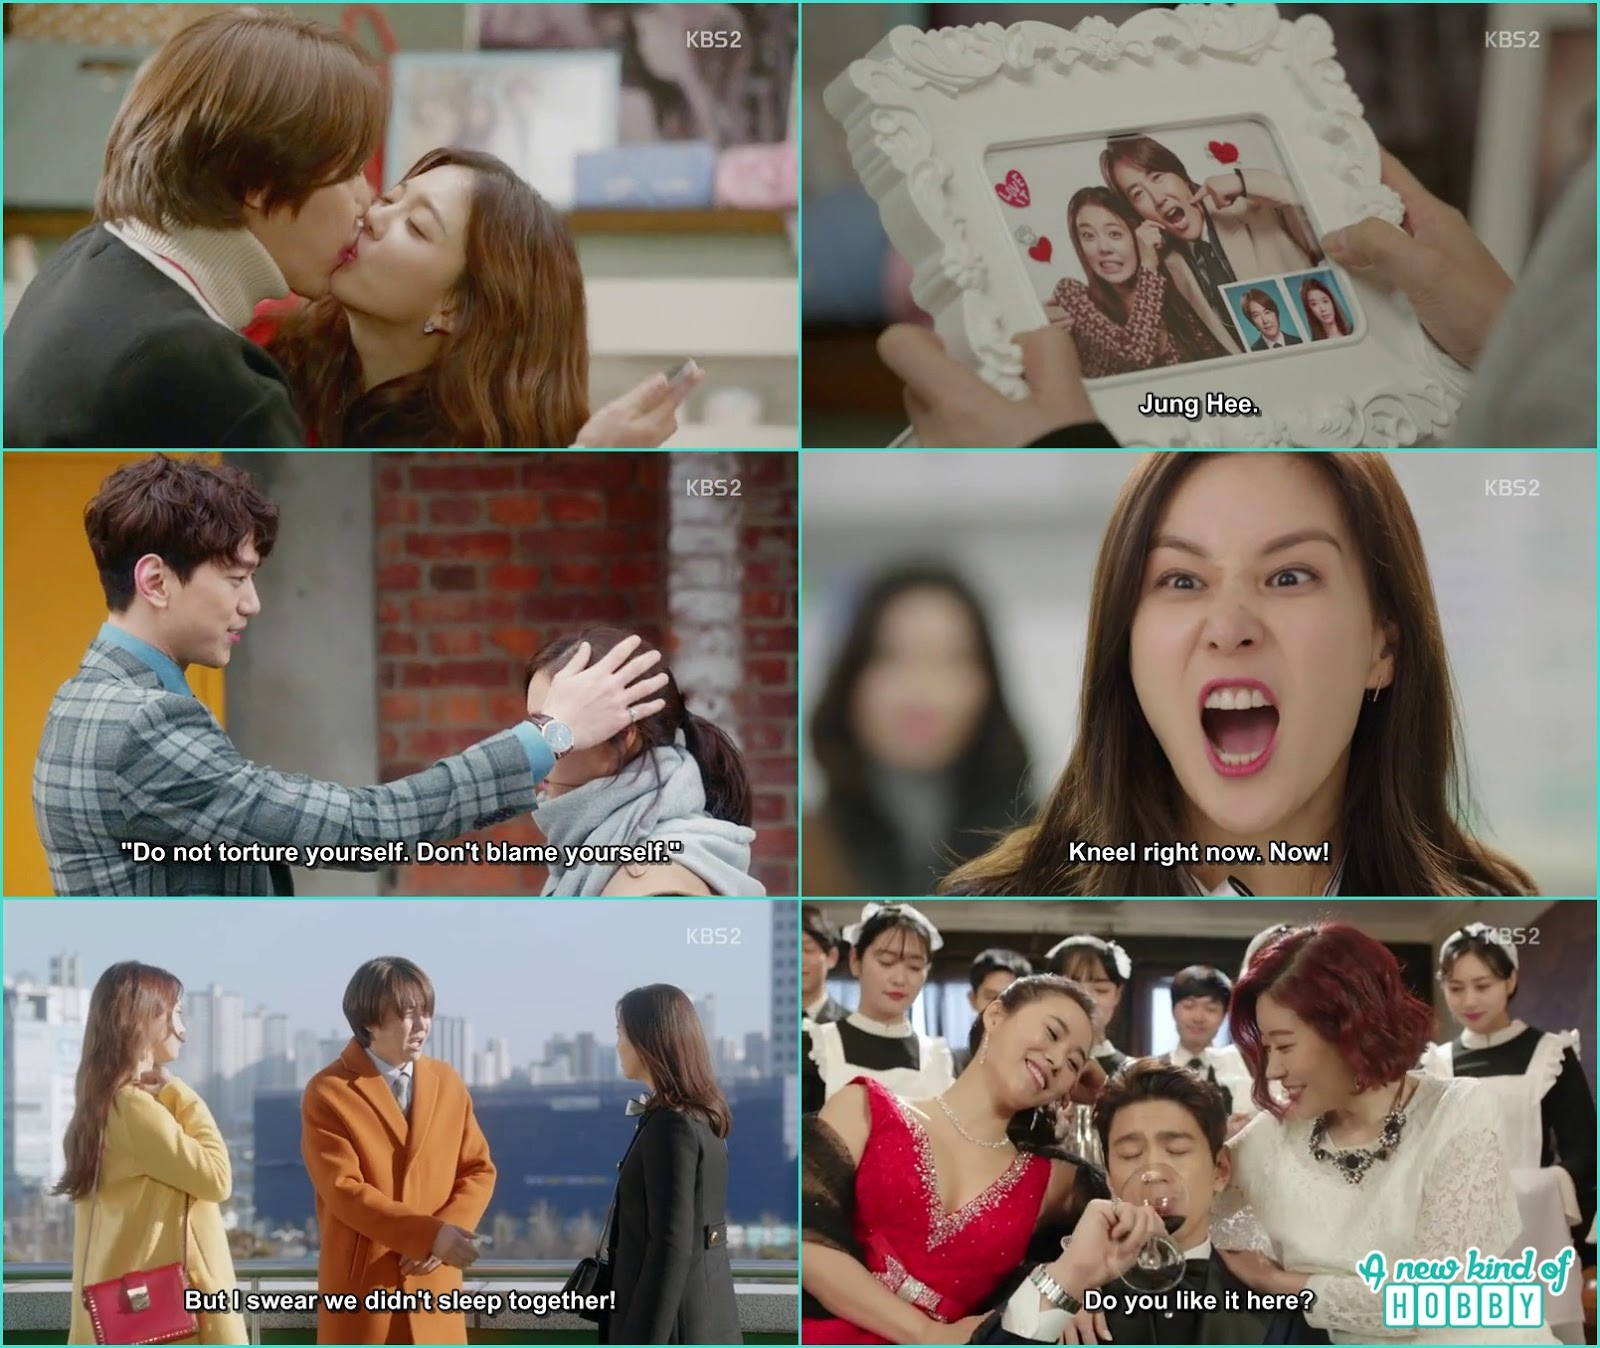 Eun Hee the Crazy Psychopath ruined a Happy Family - Ms